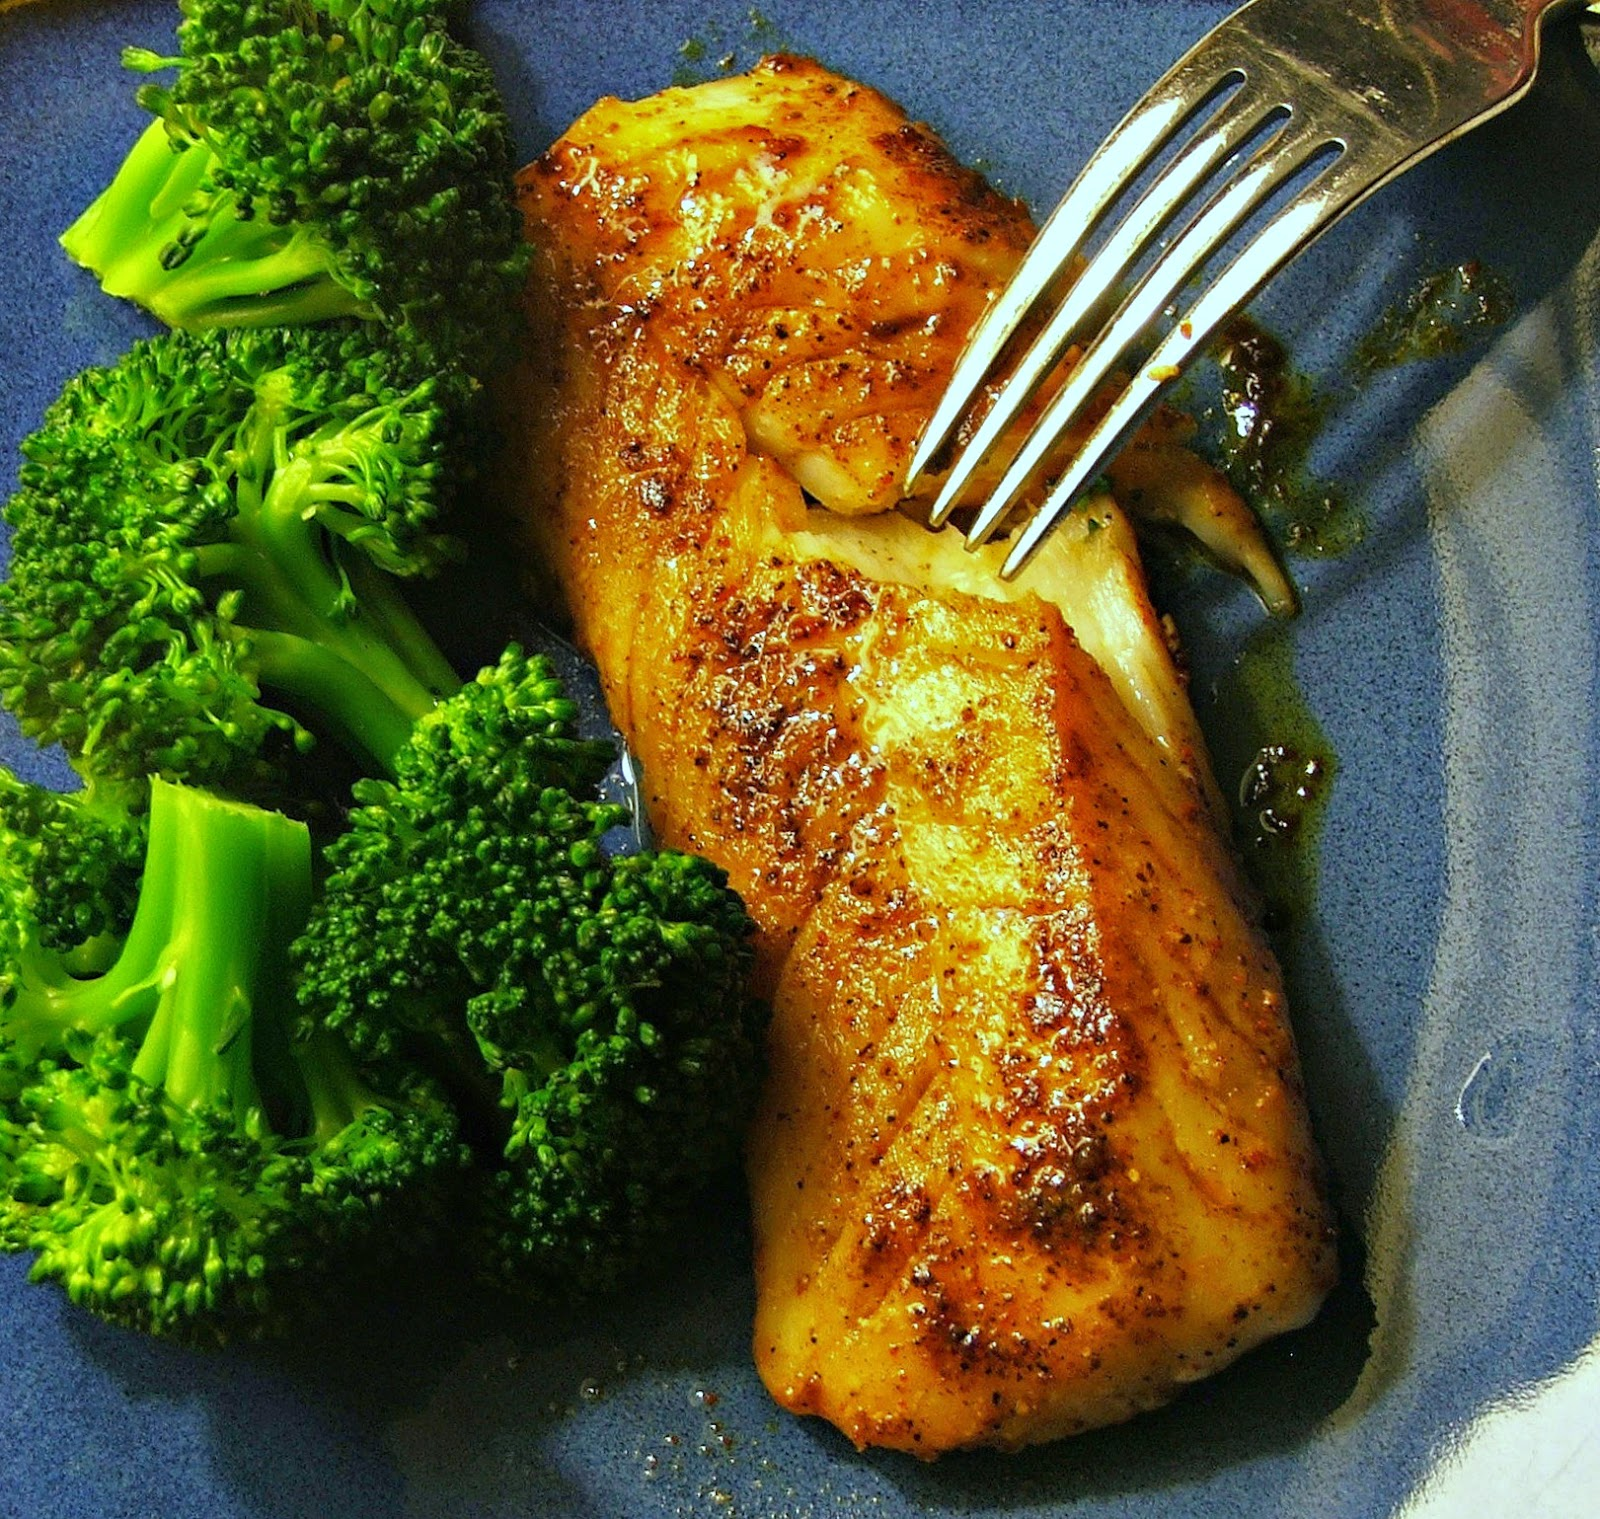 Healthy recipes for weight loos for dinner with chicken for lunch for breakfast pics photos for Tasty fish recipes